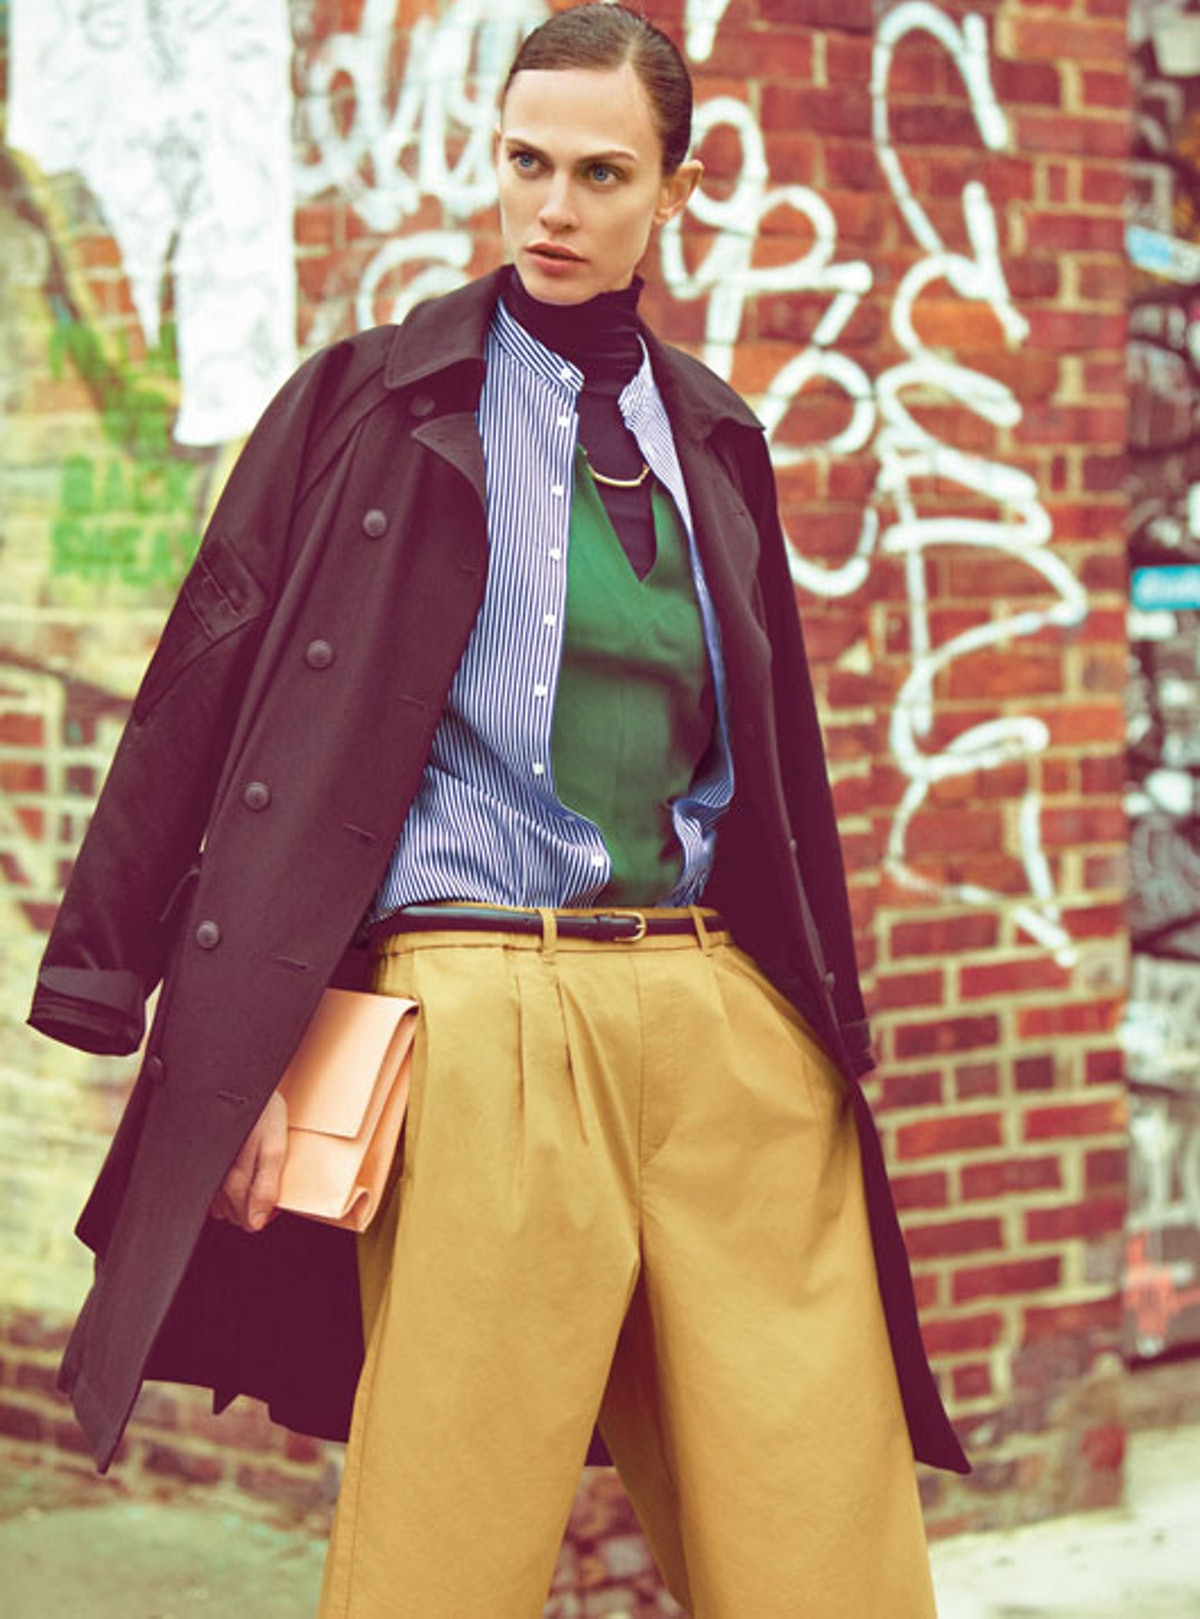 fass-menswear-inspired-coats-and-trousers-01-l.jpg